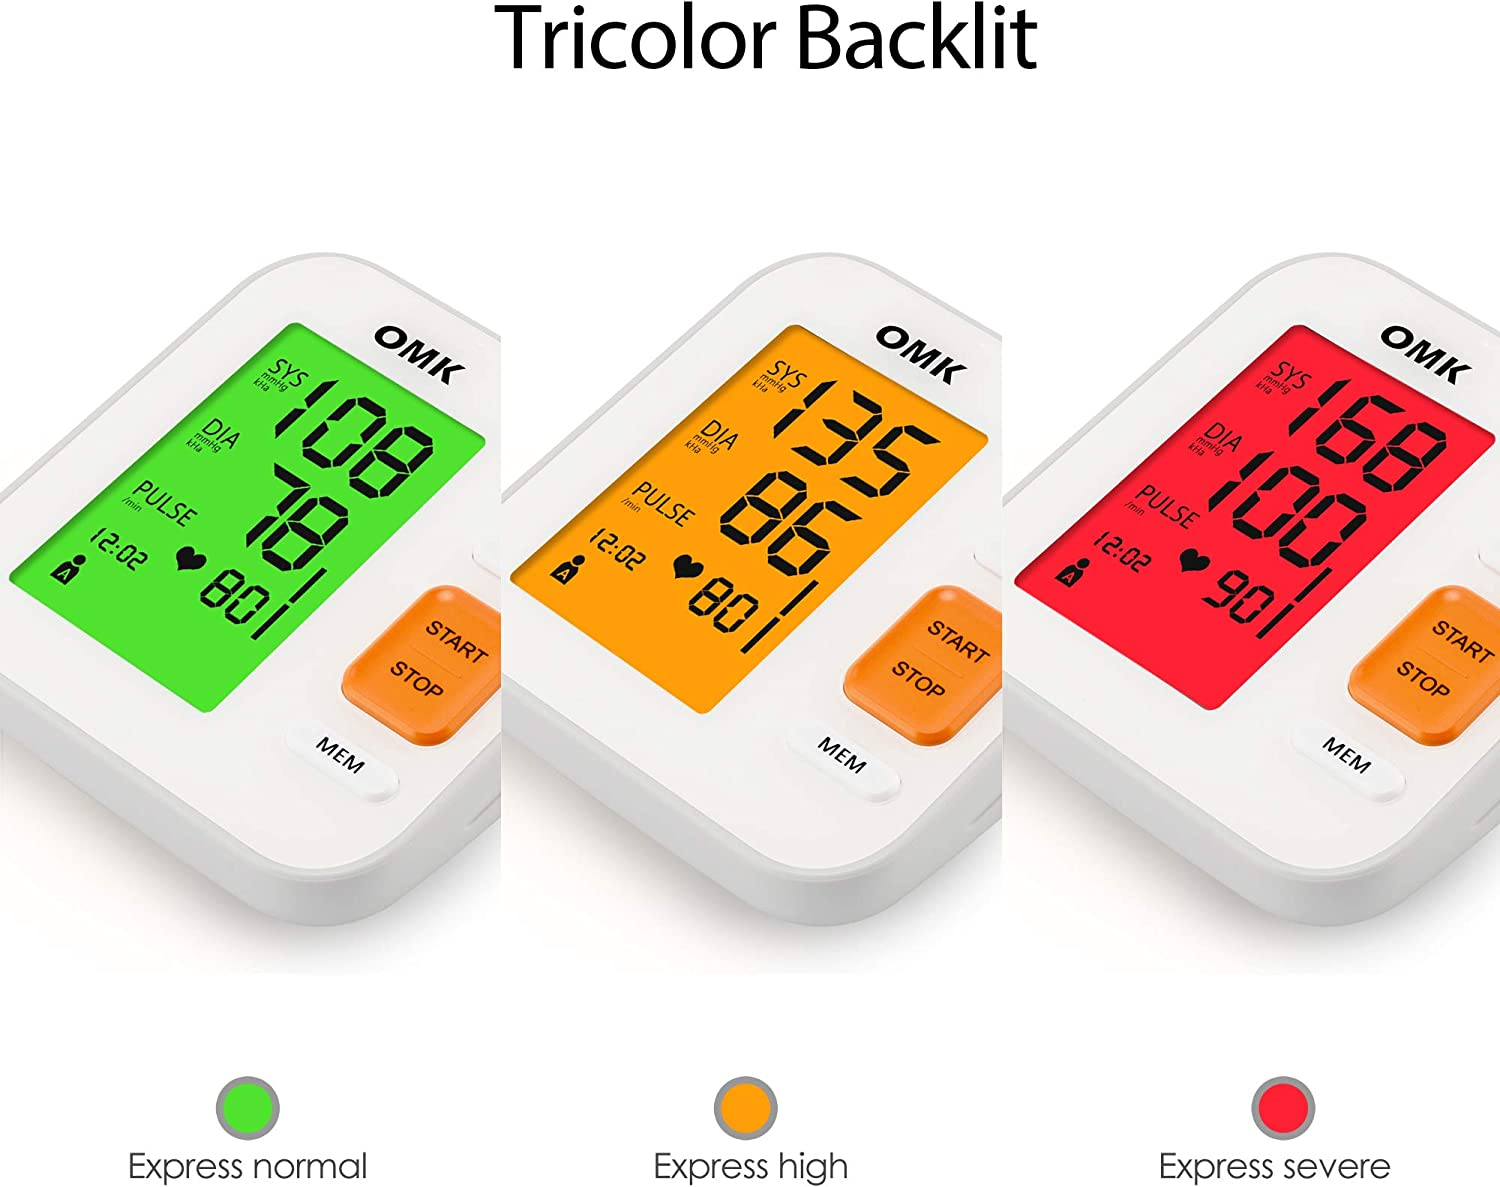 Blood Pressure Monitor Upper Arm Tricolor Backlit, OMK Automatic BP Monitor with Cuff 8.7-15.7in, 2×120 Memories, Irregular Heartbeat Detection, Accurate and Easy to Use, FDA CE Approved